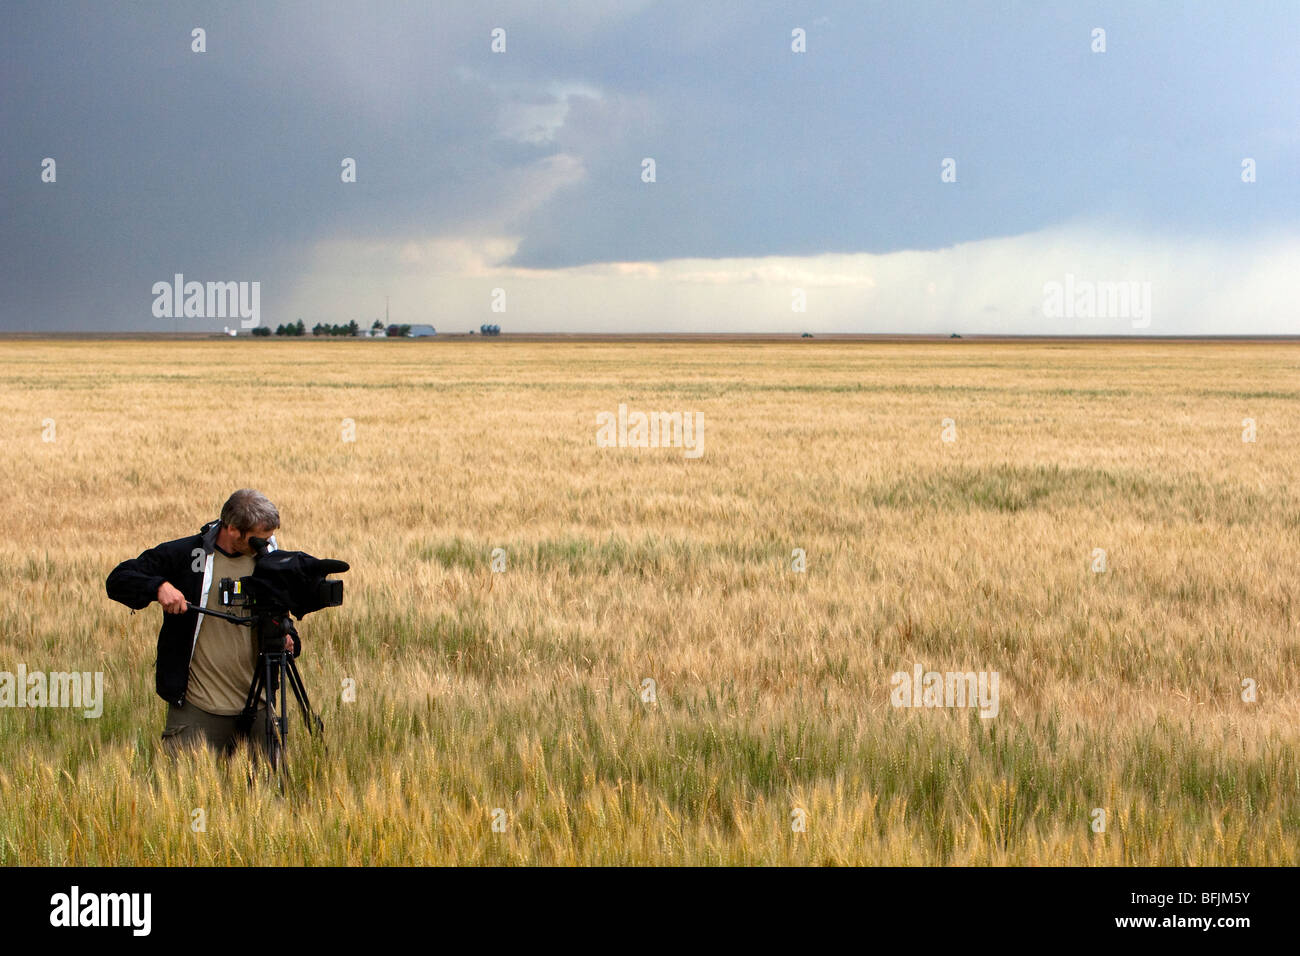 Cameraman Brain Pollack for the Weather Channel stands in prairie grass and films a developing storm, June 10, 2009. - Stock Image